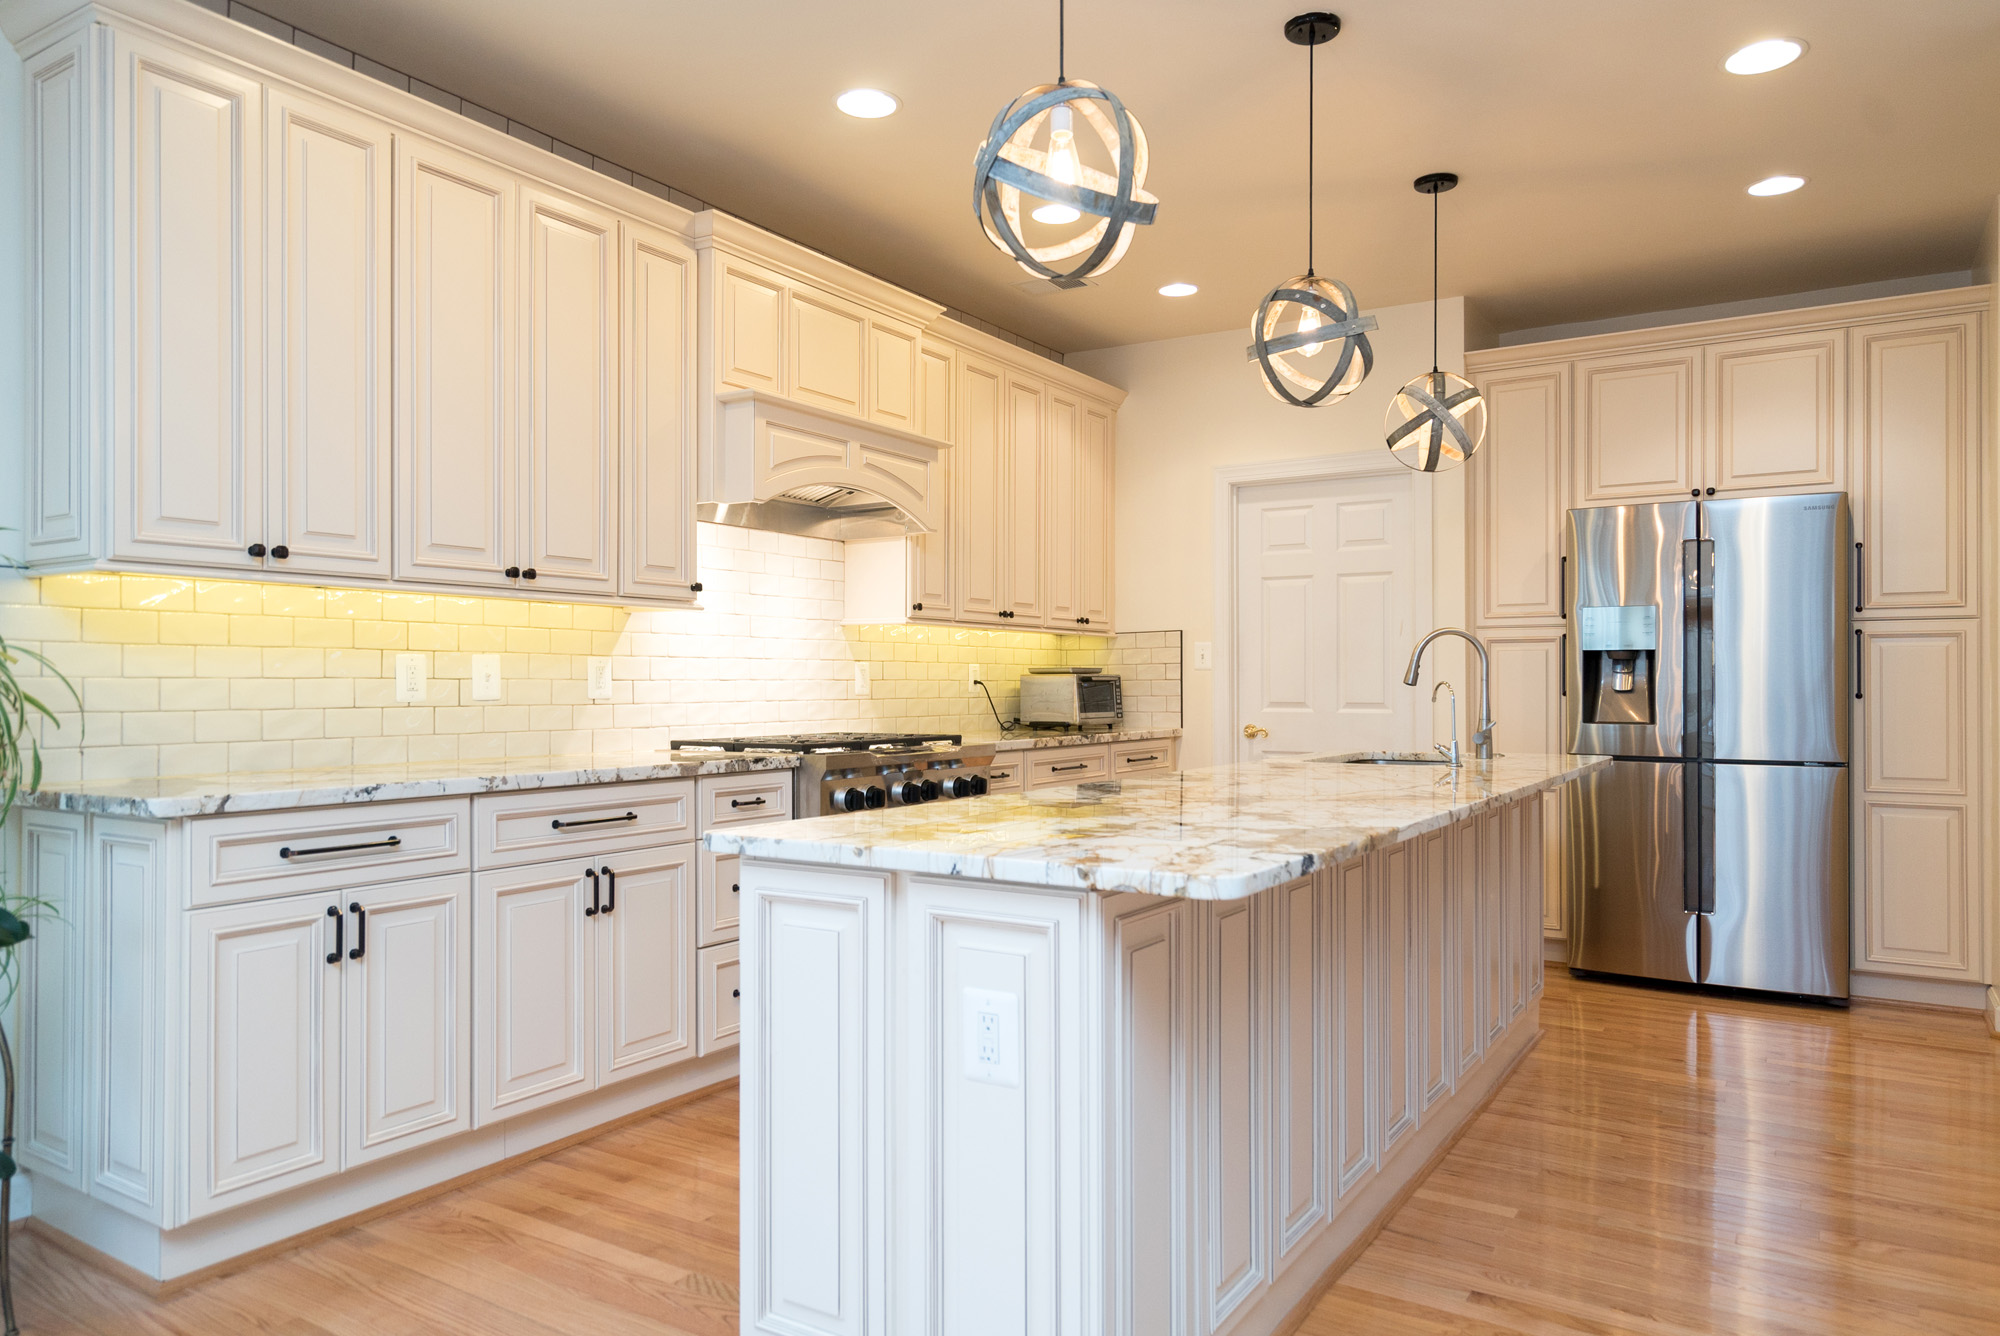 Kitchen Remodeling In Fairfax, VA